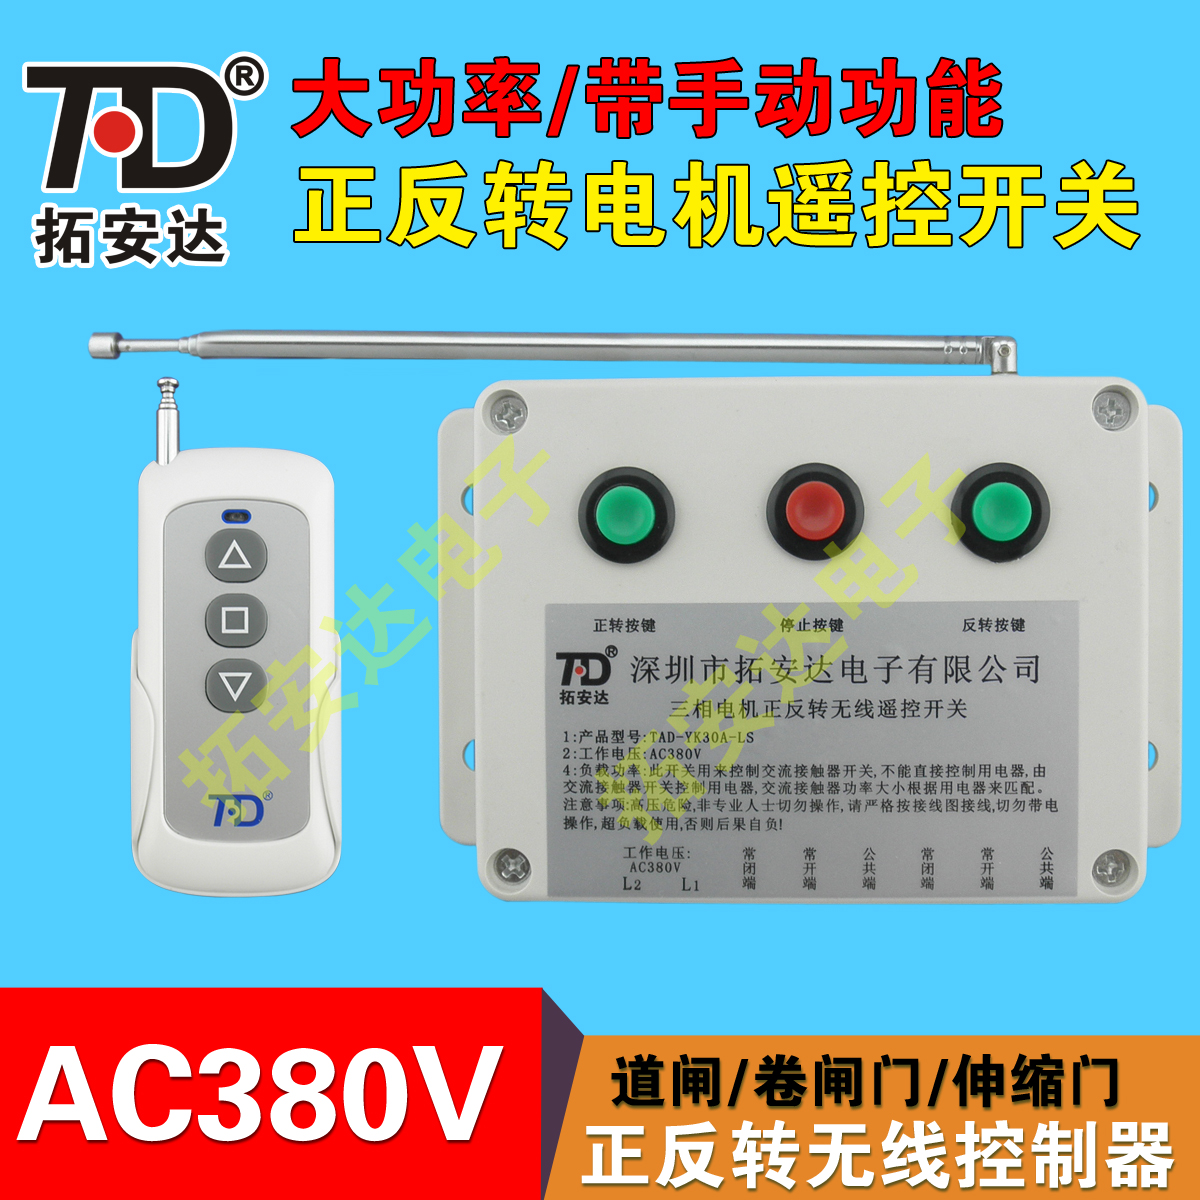 Clearance discount 380V two way three-phase motor water pump wireless remote control switch 30A high power electric hoist reverse